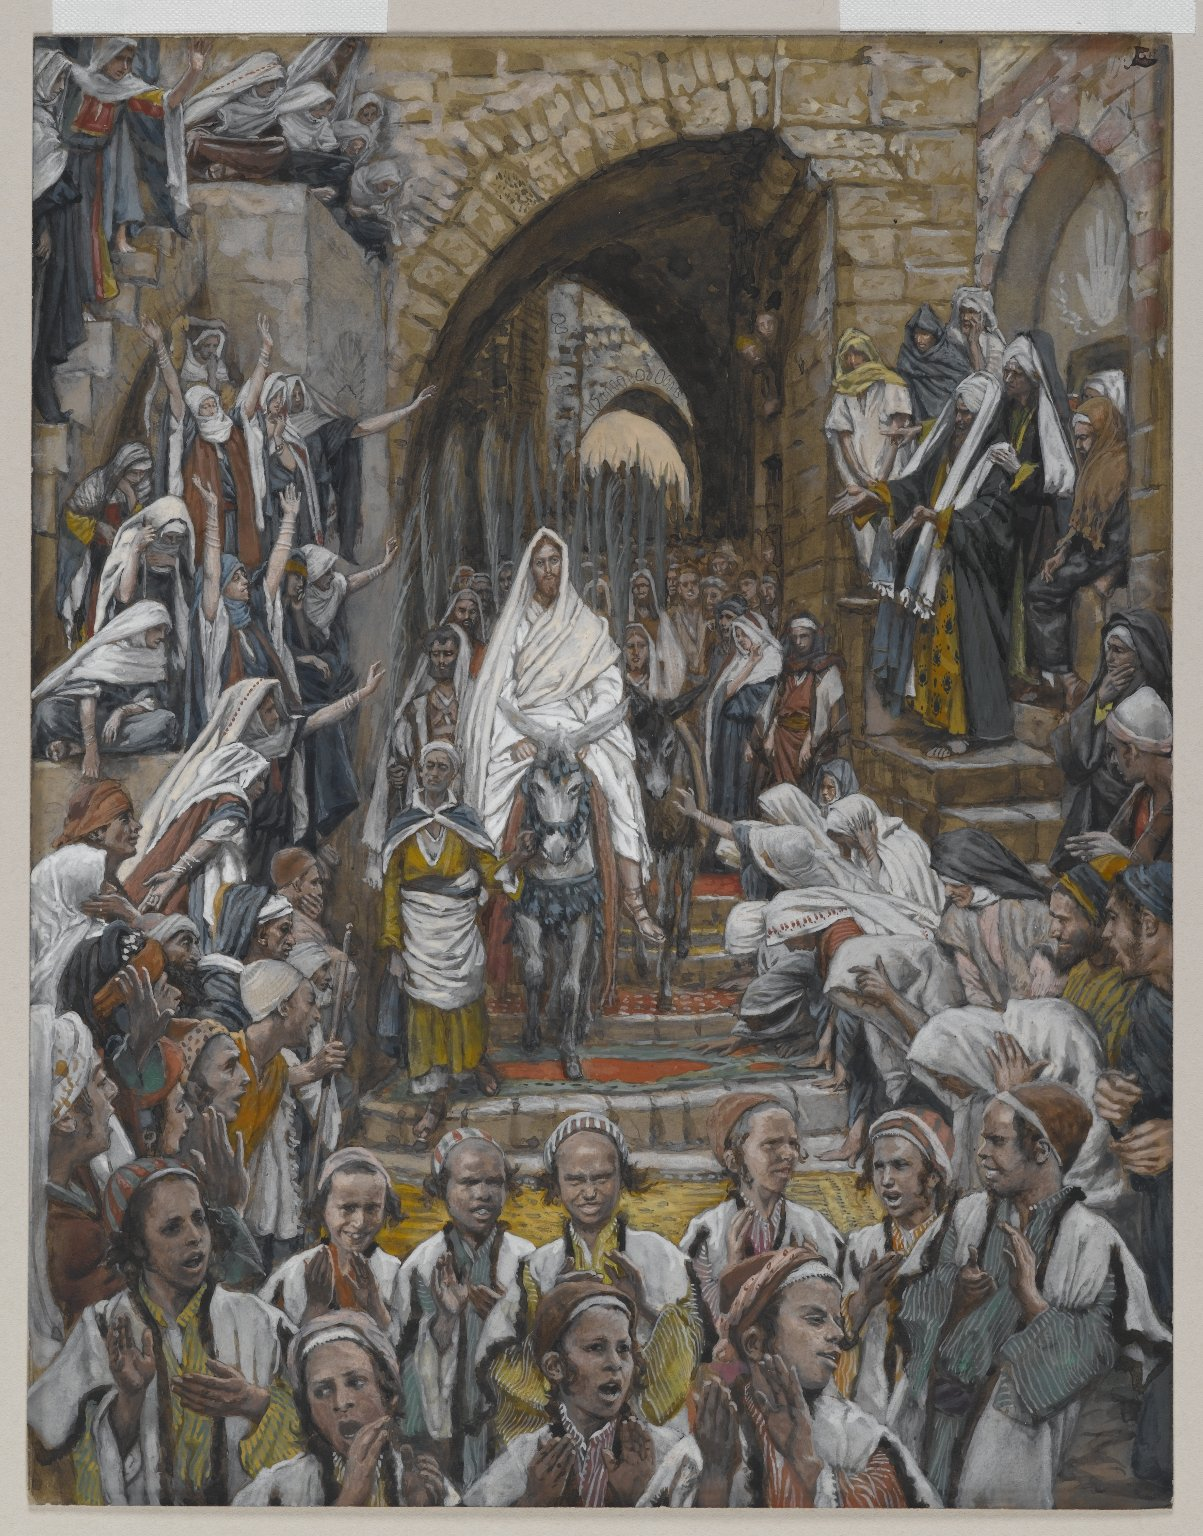 Jesus procession in the streets of Jerusalem